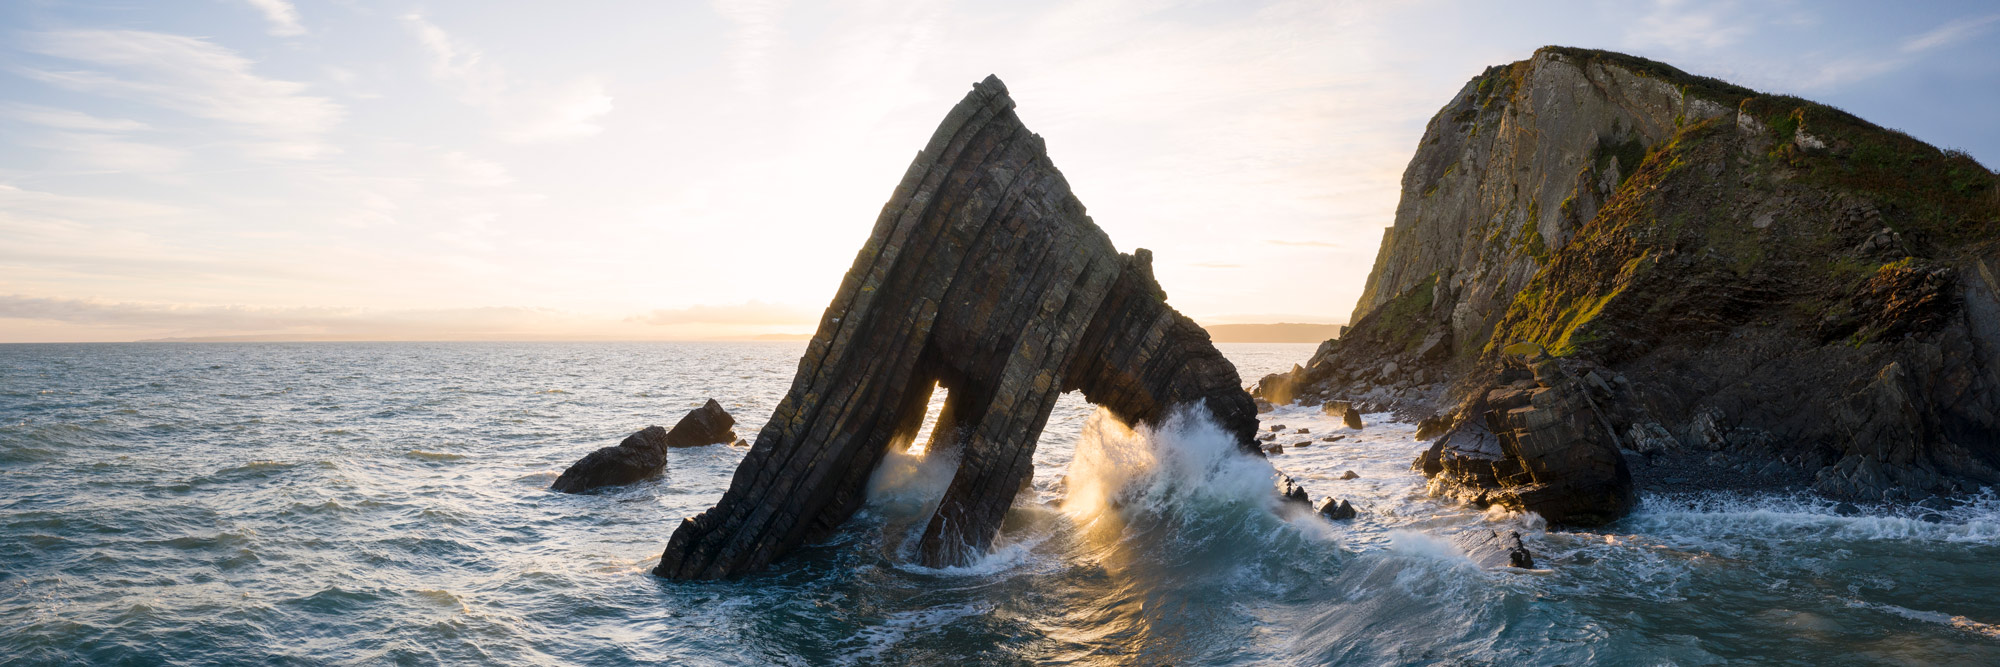 A panoramic print as a wave crashes against rocky coastline